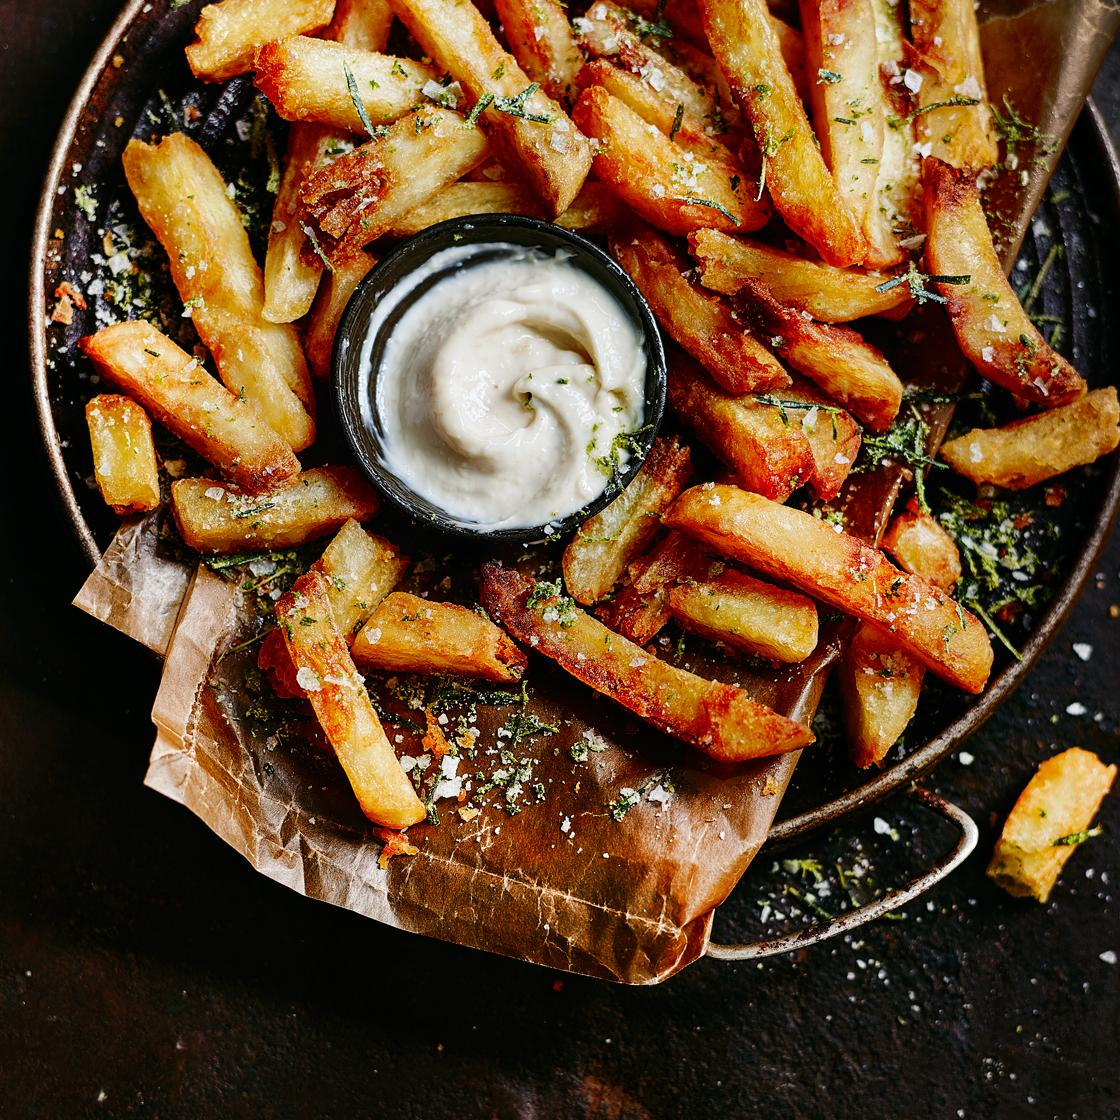 Chunky Chips with aioli & ketchup